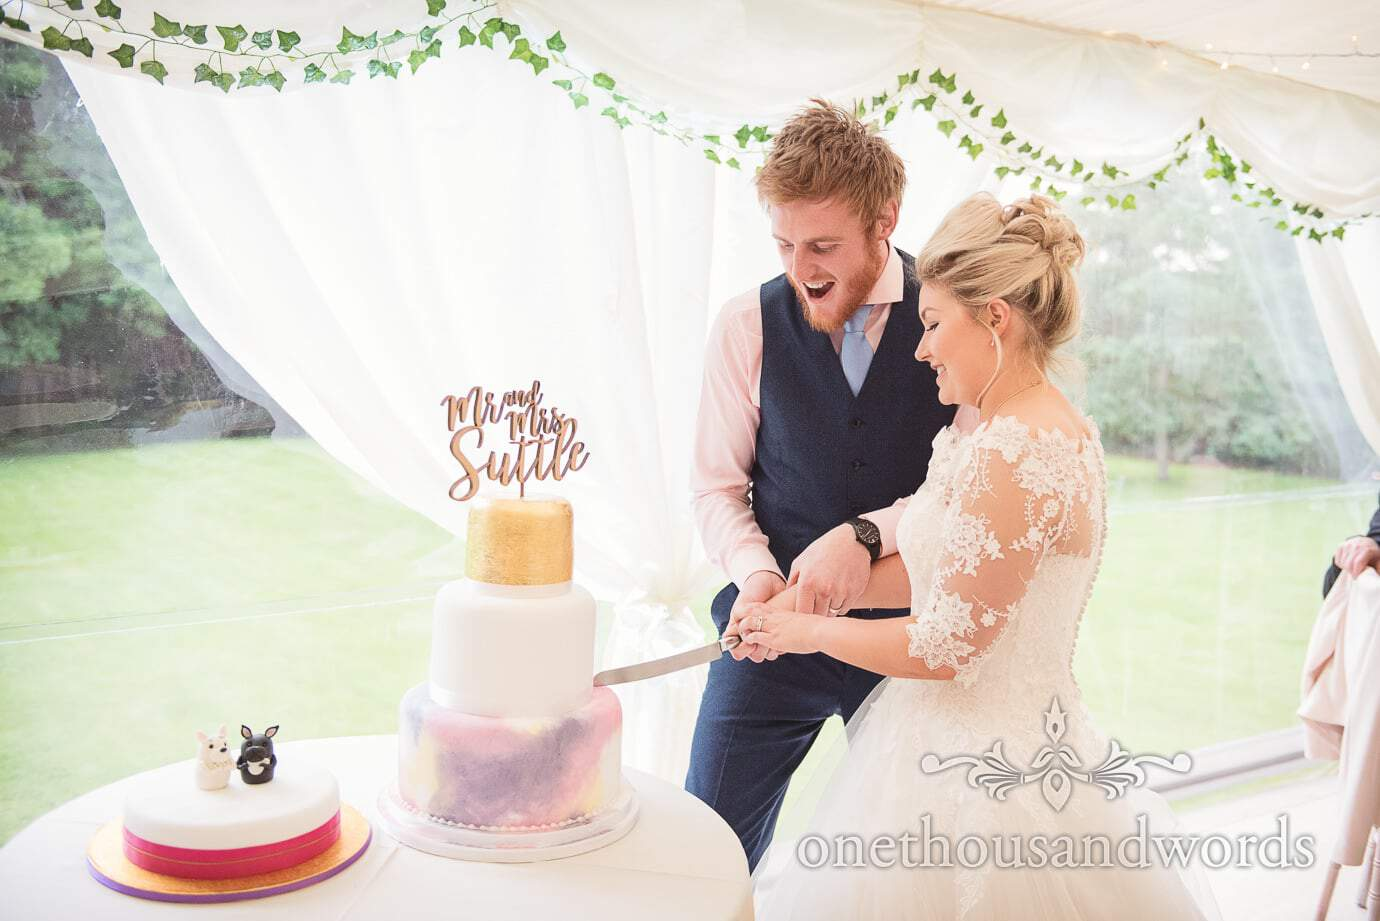 Bride and groom cut colourful wedding cakes in wedding marquee with ivy vines